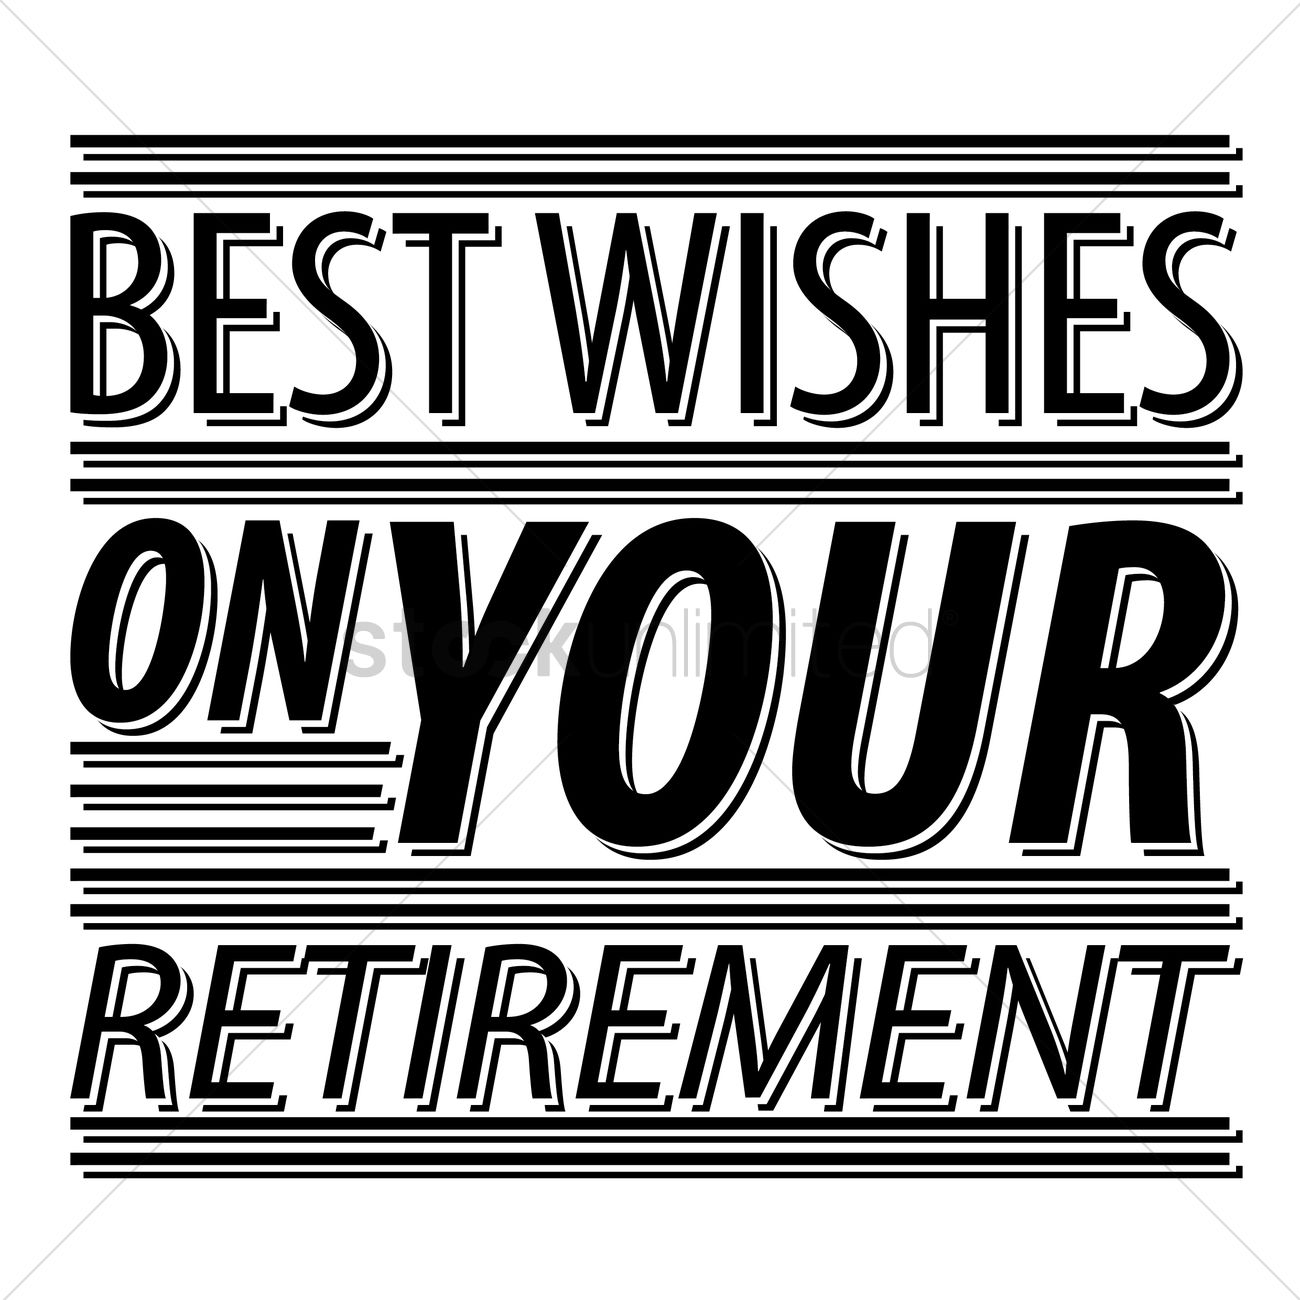 Best wishes on your retirement vector image 1827364 stockunlimited best wishes on your retirement vector graphic kristyandbryce Images